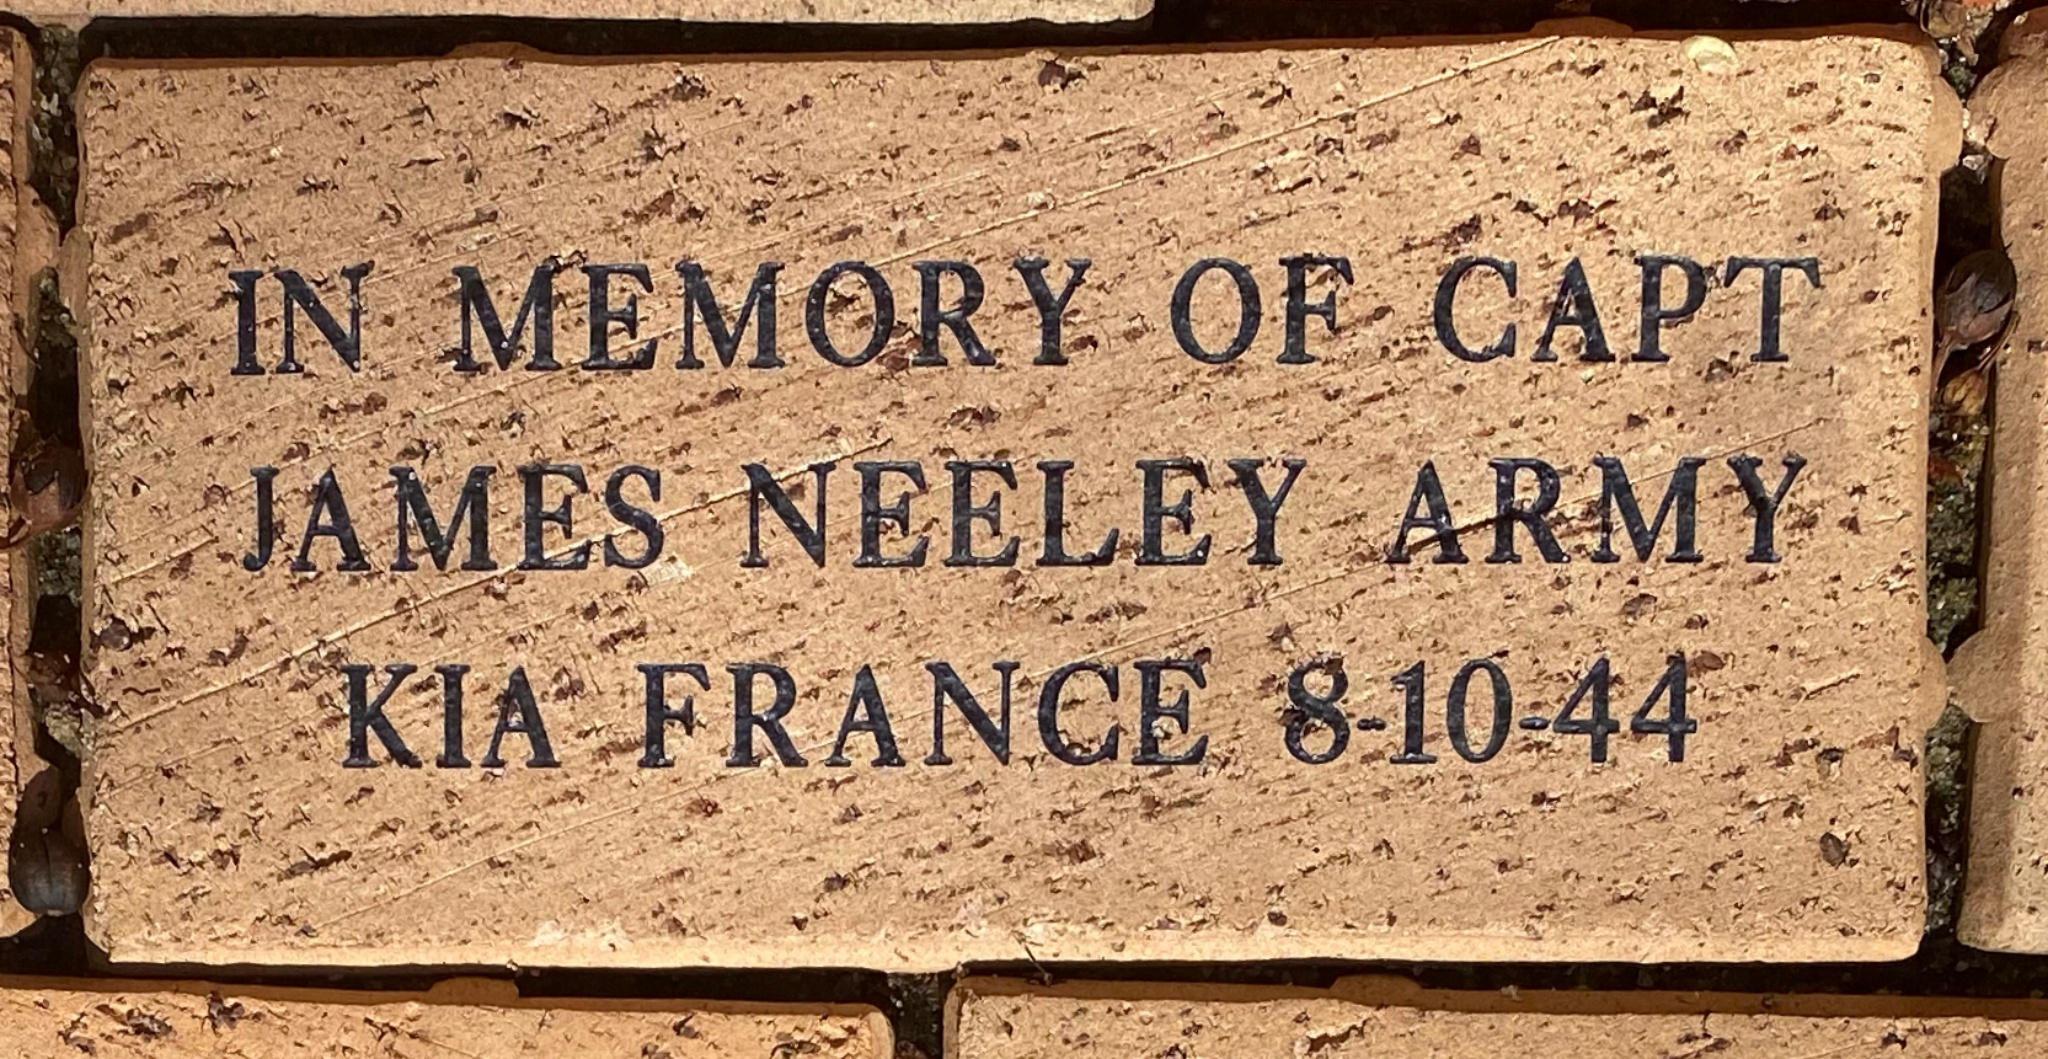 IN MEMORY OF CAPT  JAMES NEELEY ARMY KIA FRANCE 8-10-44